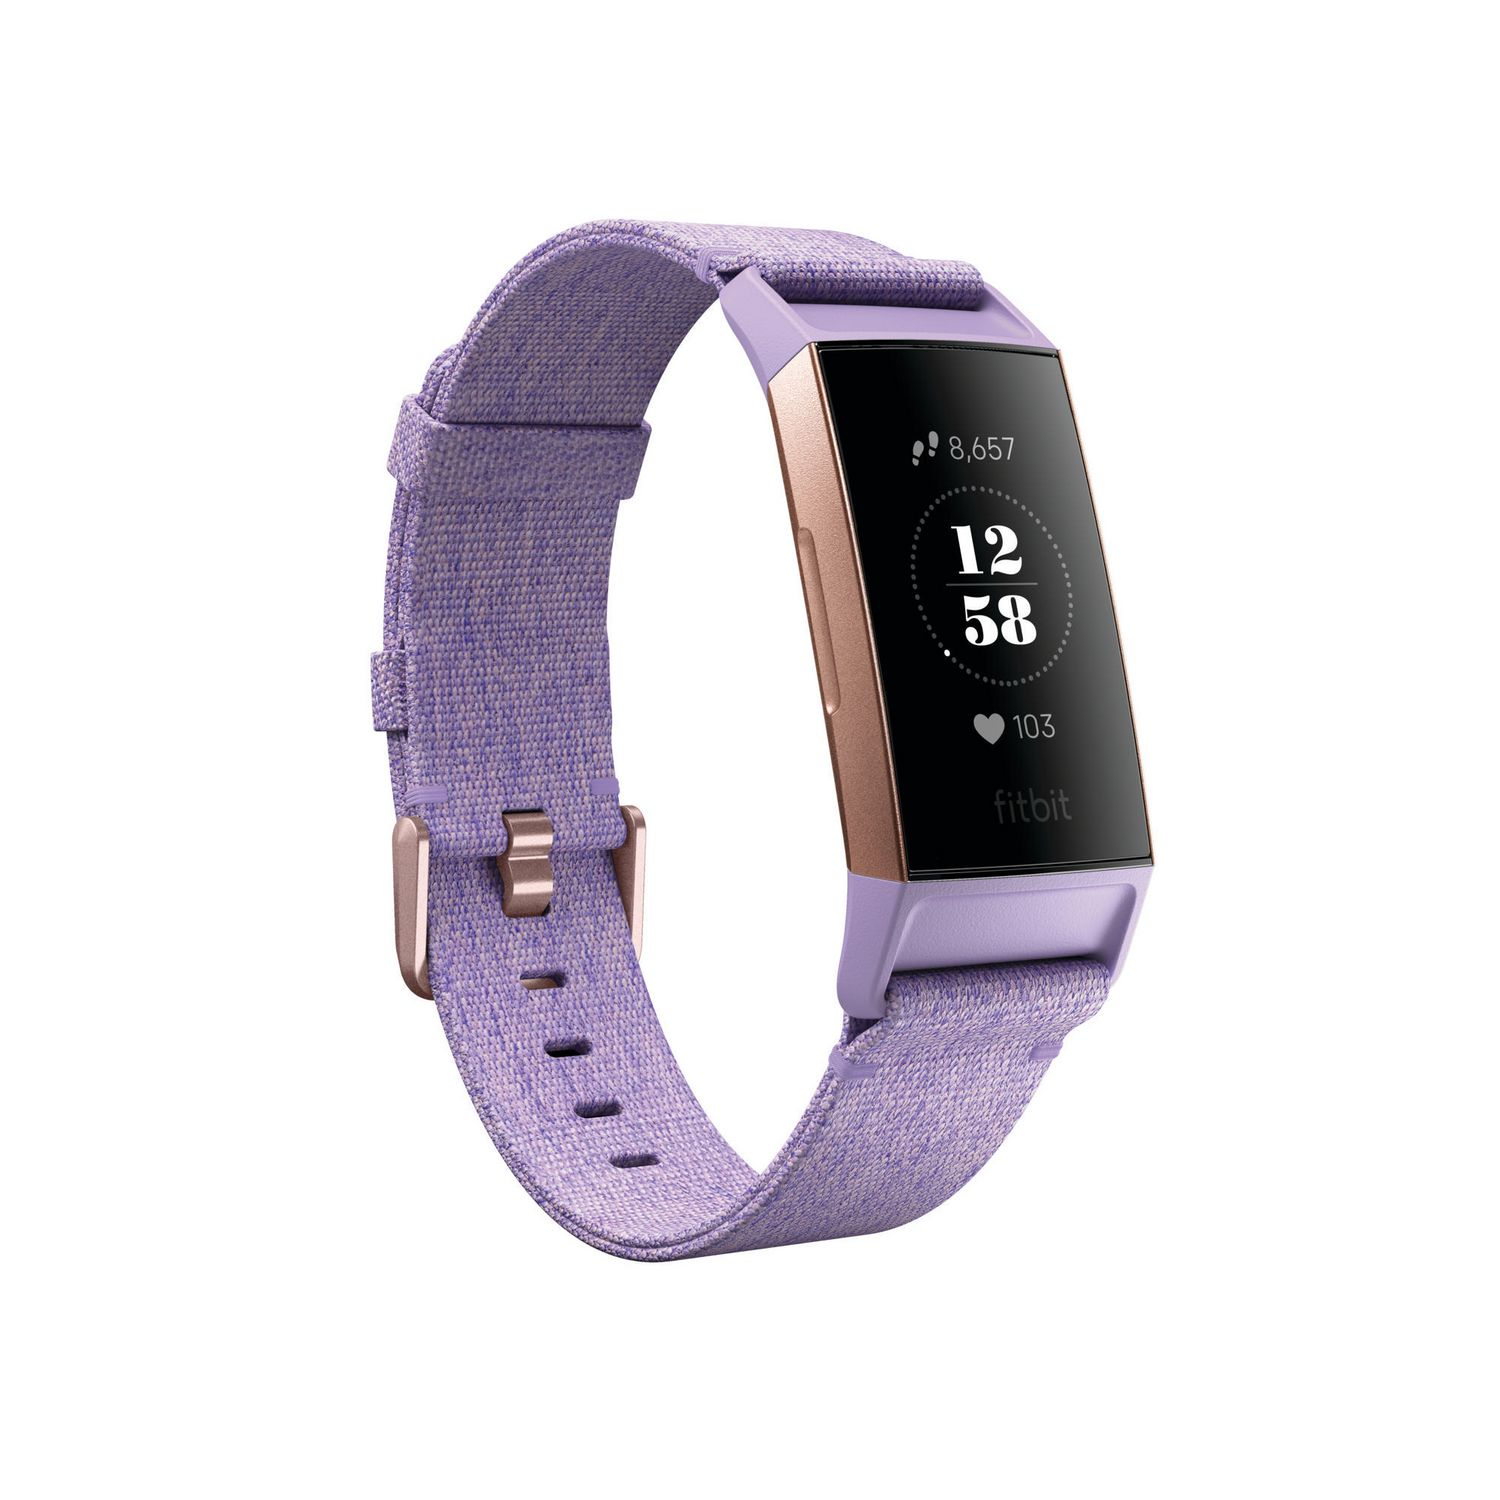 Fitbit Charge 3 Advanced Fitness Tracker Special Edition with graphite aluminum case, purple silicone band and digital display - best Fitbit for sleep tracking